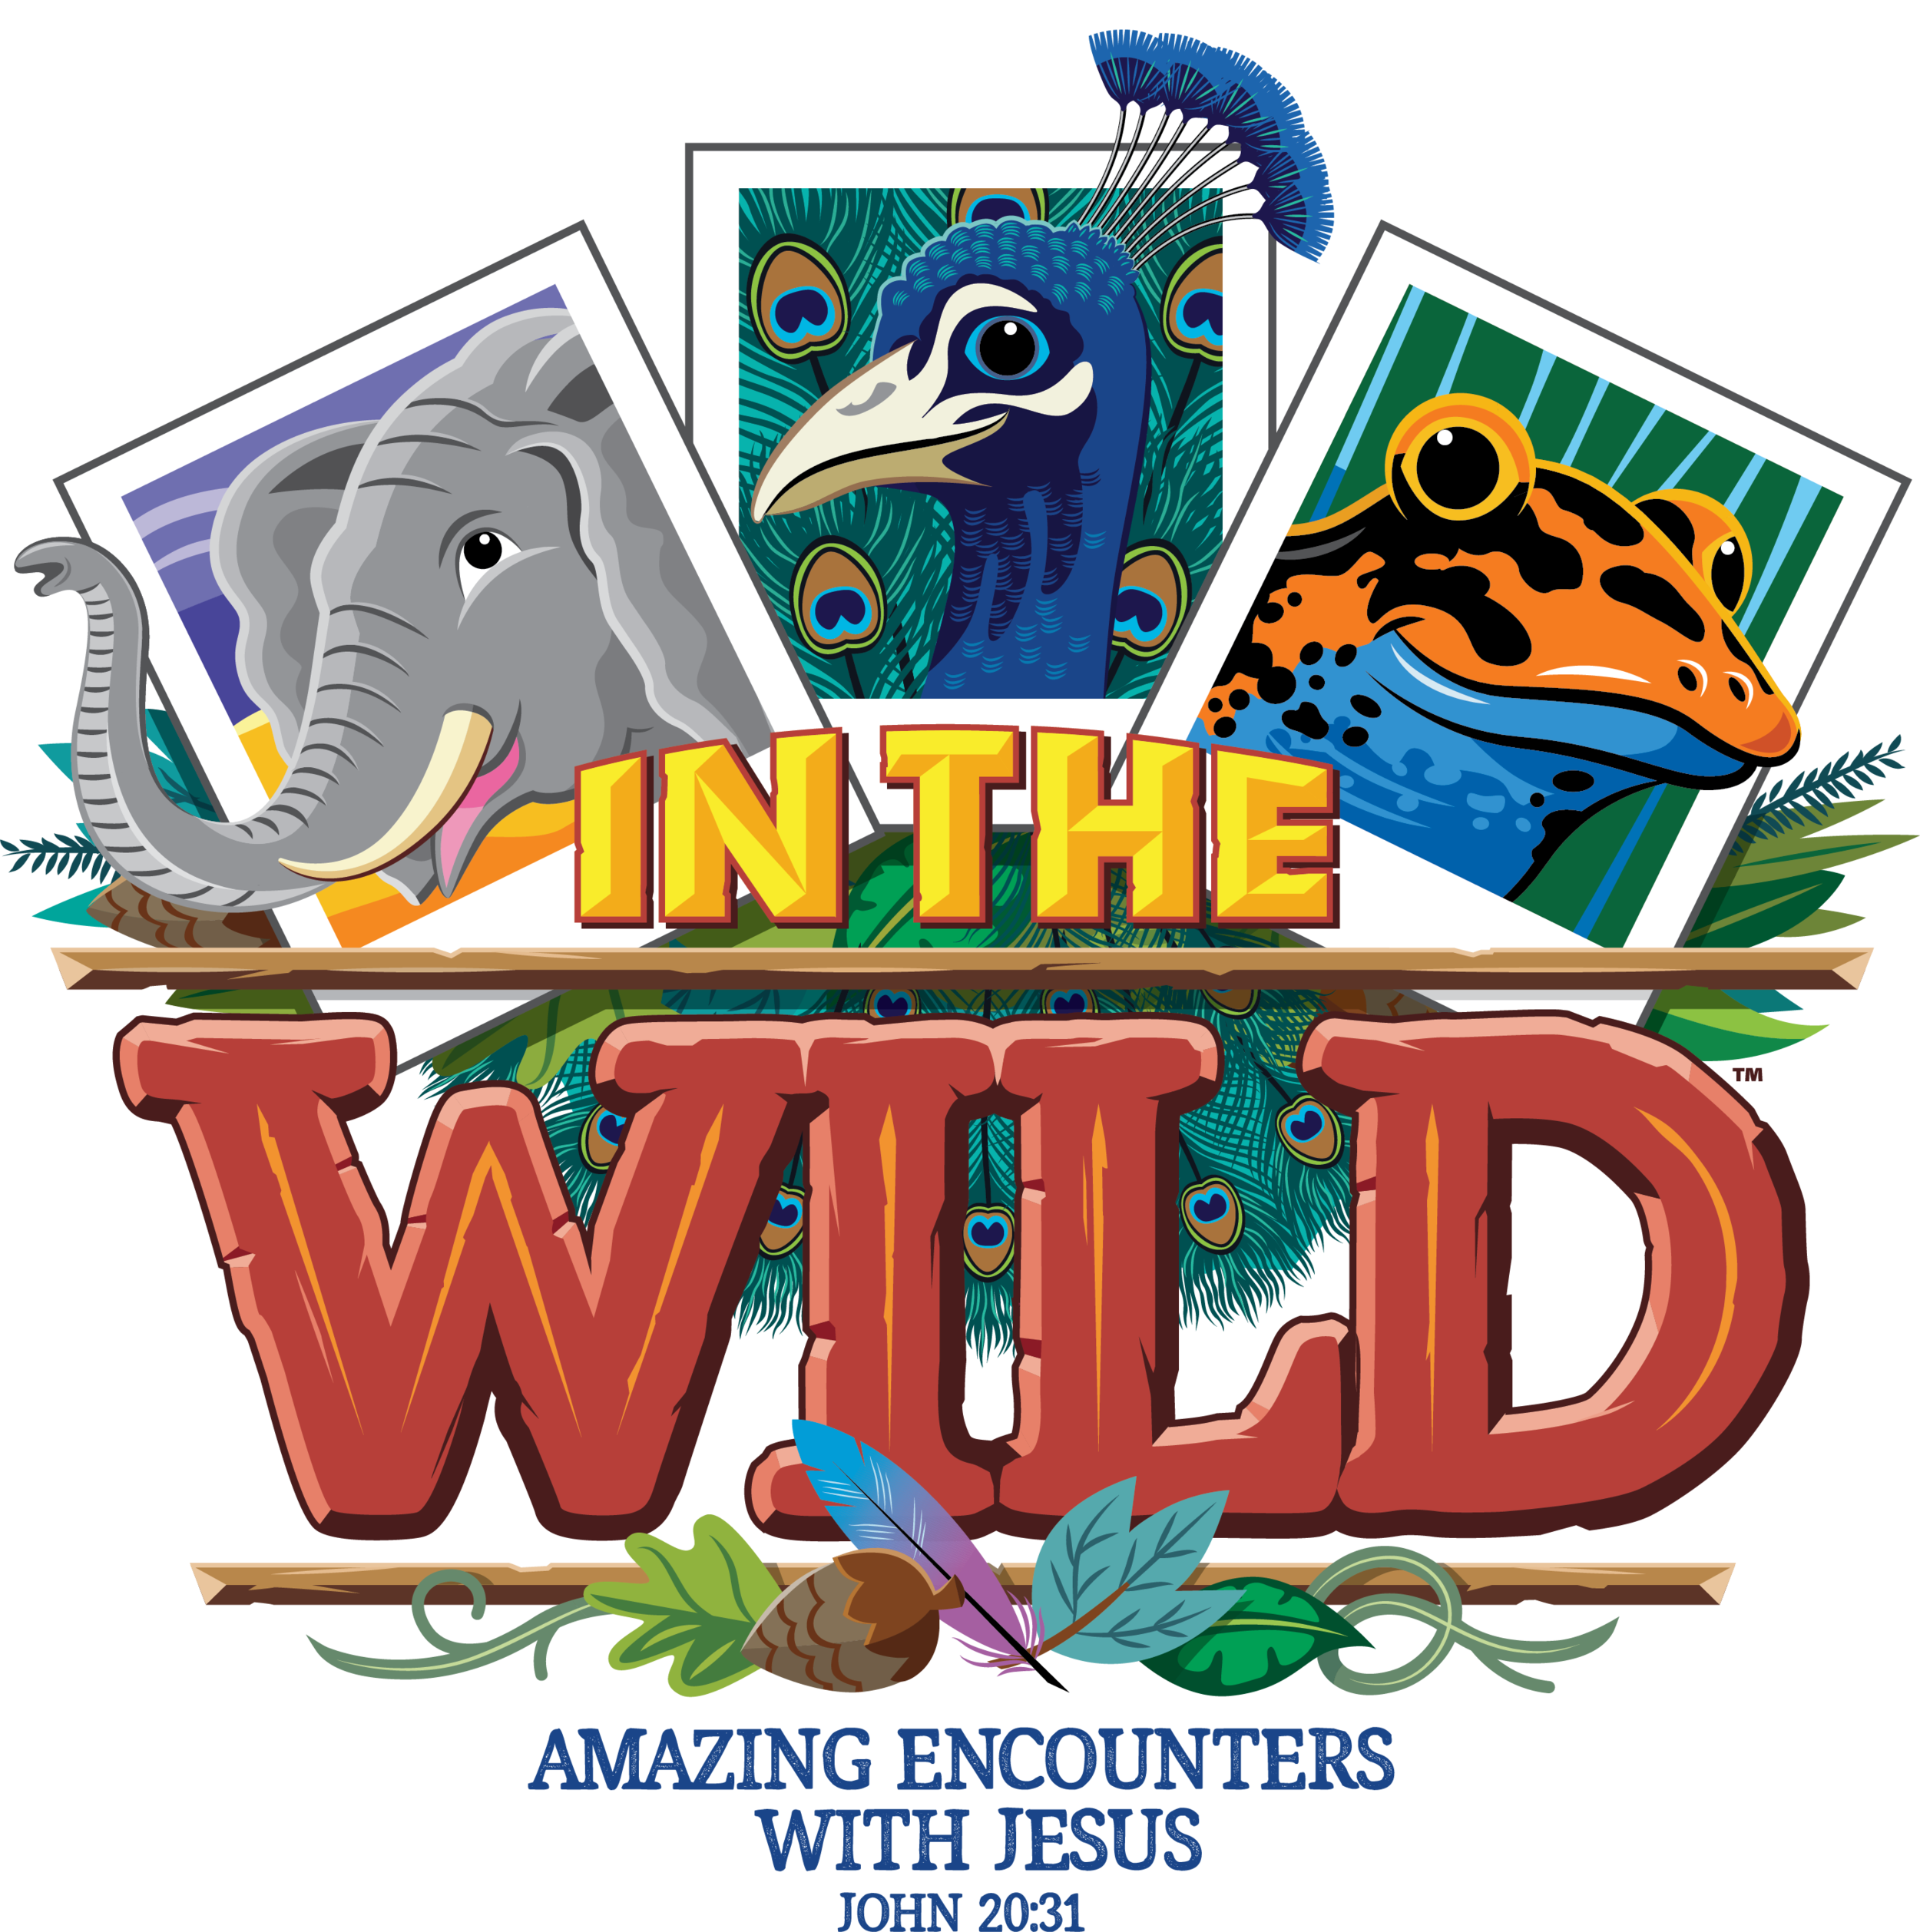 VBS 2019 - July 22-26, 2019 at CCBAC